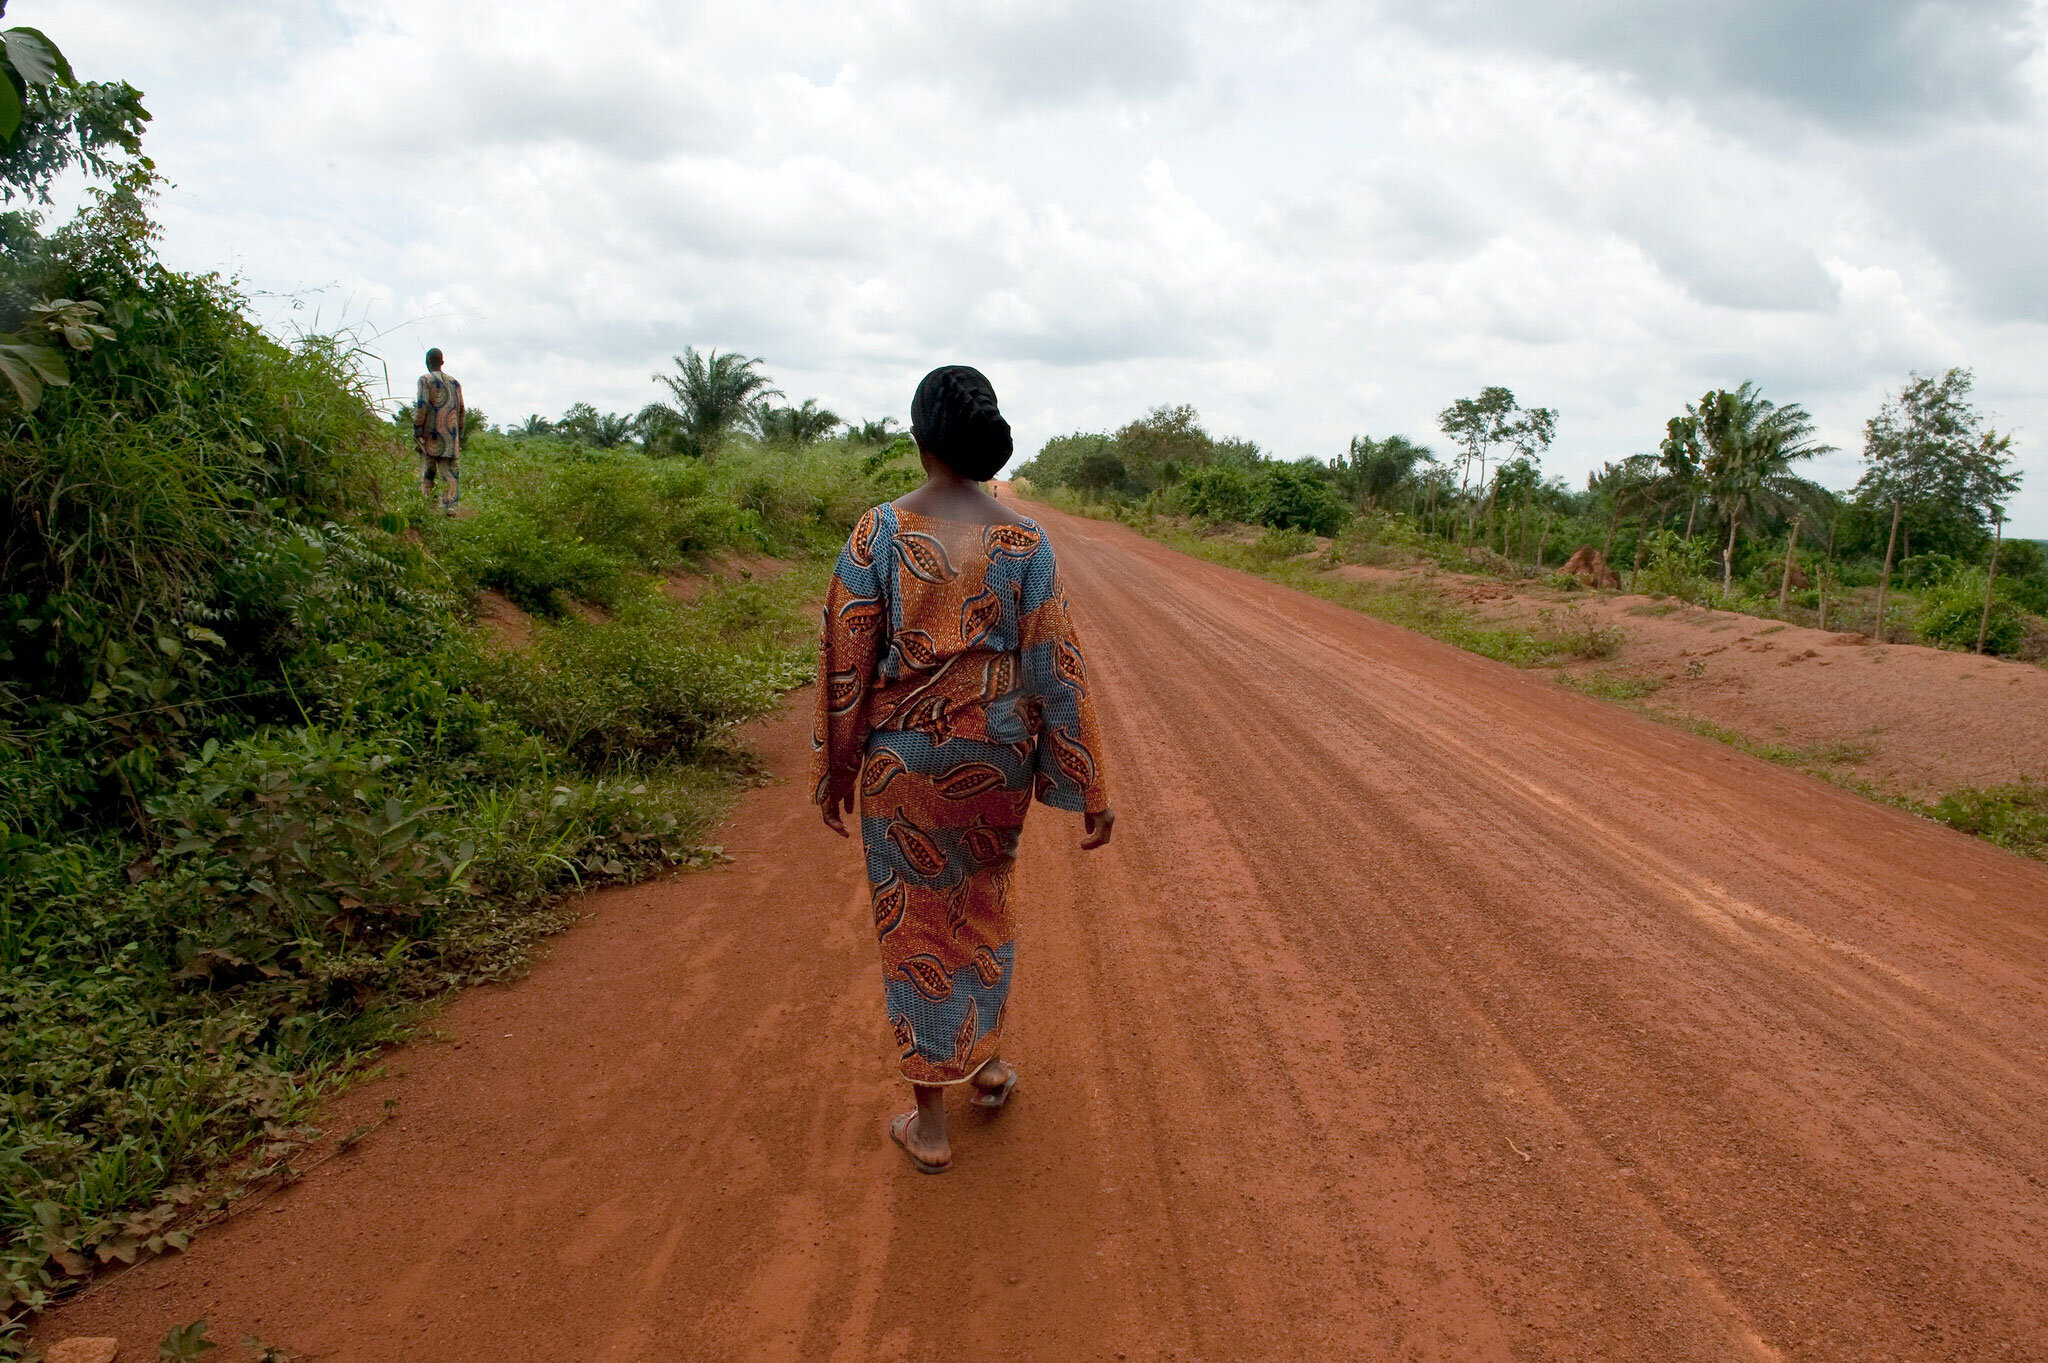 a woman in a dress and sandals walking down a dirt road